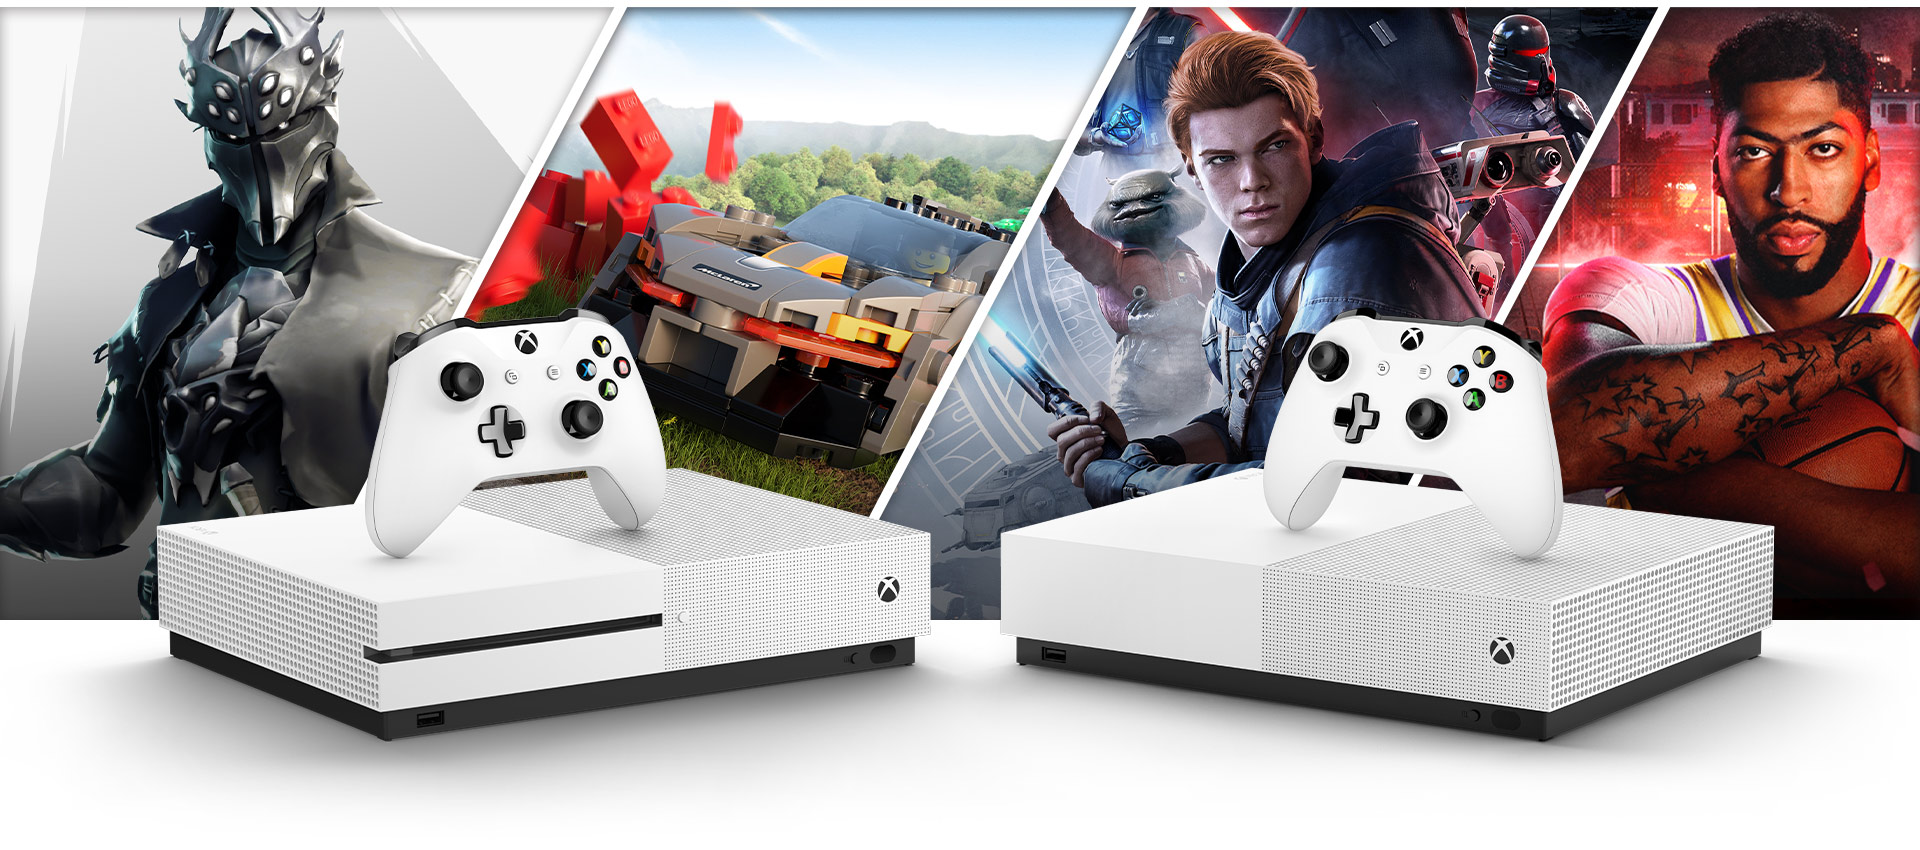 Fortnite、Forza Horizon 4、Star Wars Jedi Fallen Order 和 NBA 2K20 圖像在 Xbox One S 和 Xbox One S All Digital Edition 後面